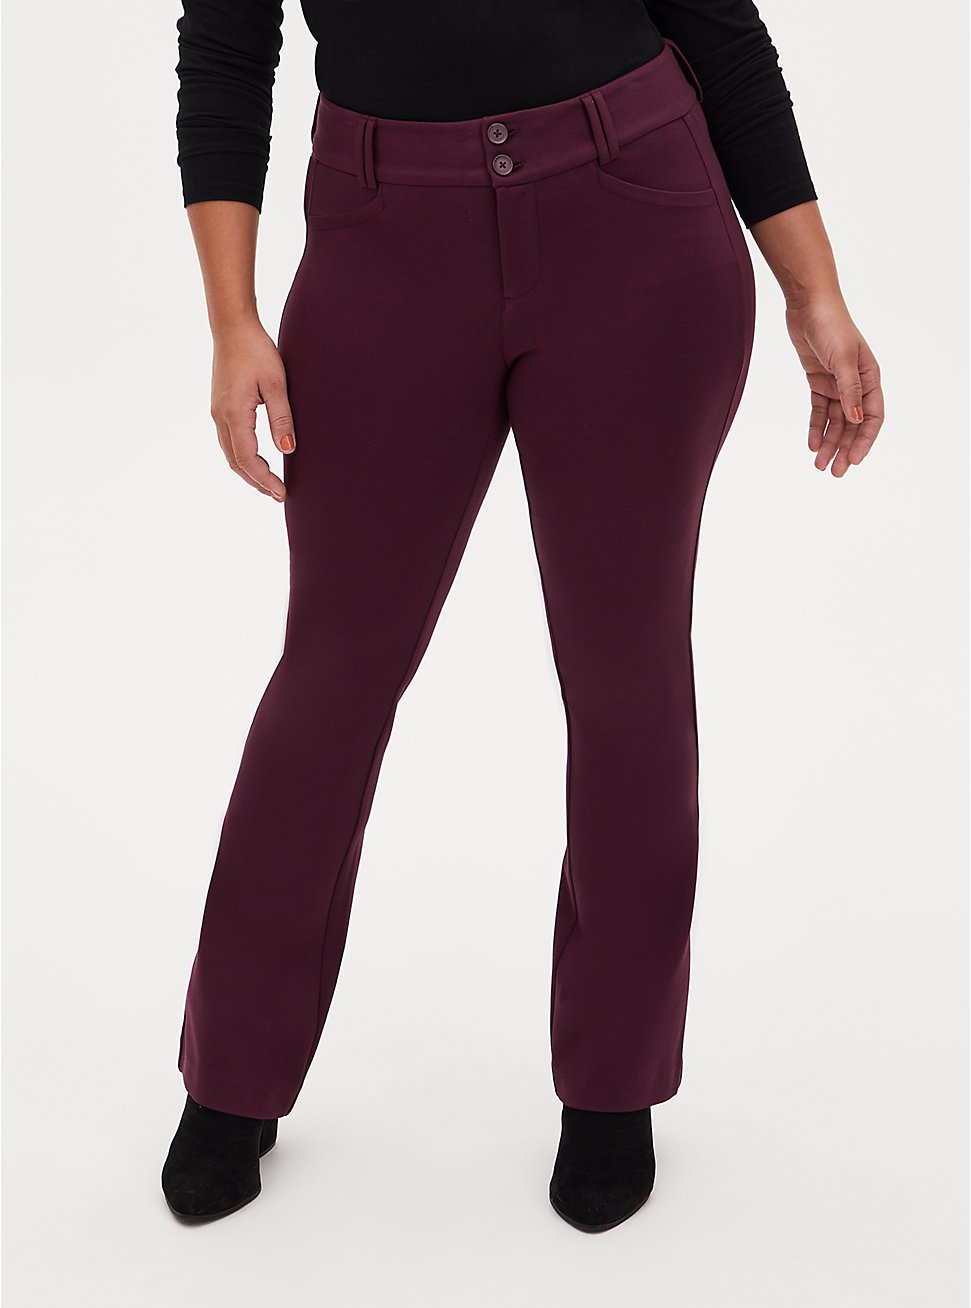 Studio Signature Premium Ponte Dark Wine Trouser, RED, hi-res